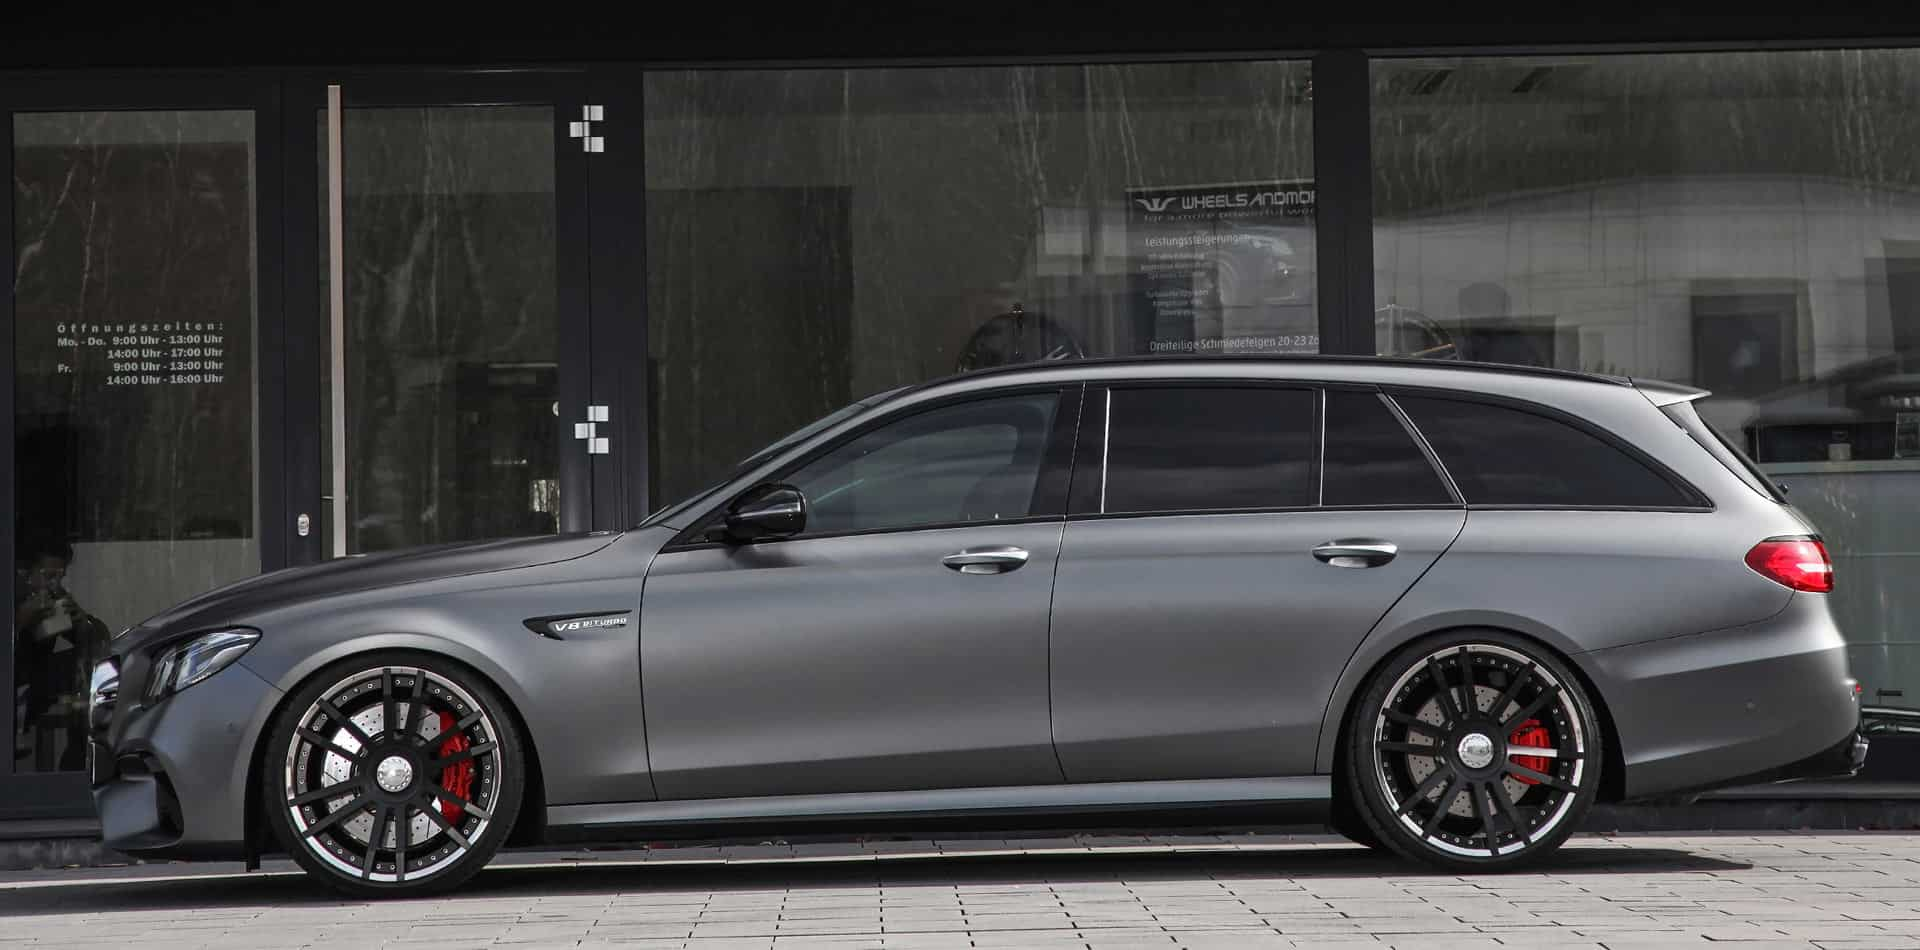 mercedes w213 e63 amg tuning wheels and exhaust. Black Bedroom Furniture Sets. Home Design Ideas